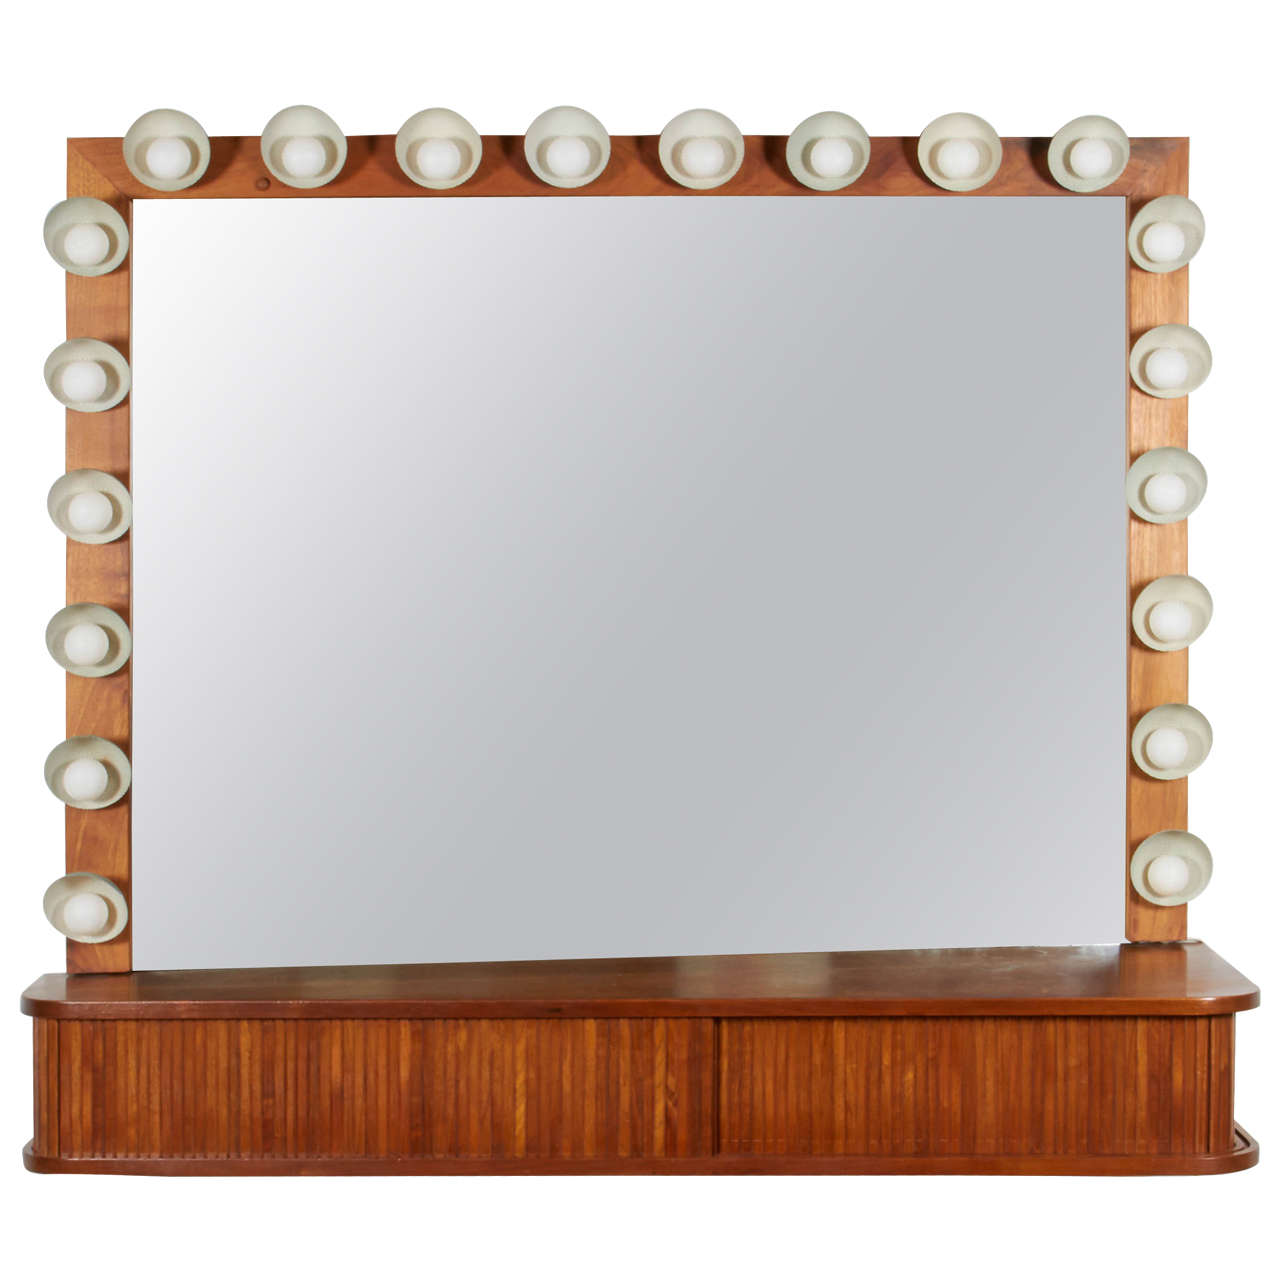 Custom Vanity with Perforated Metal Light Shades, Richard M. Wakamoto, 1957 For Sale